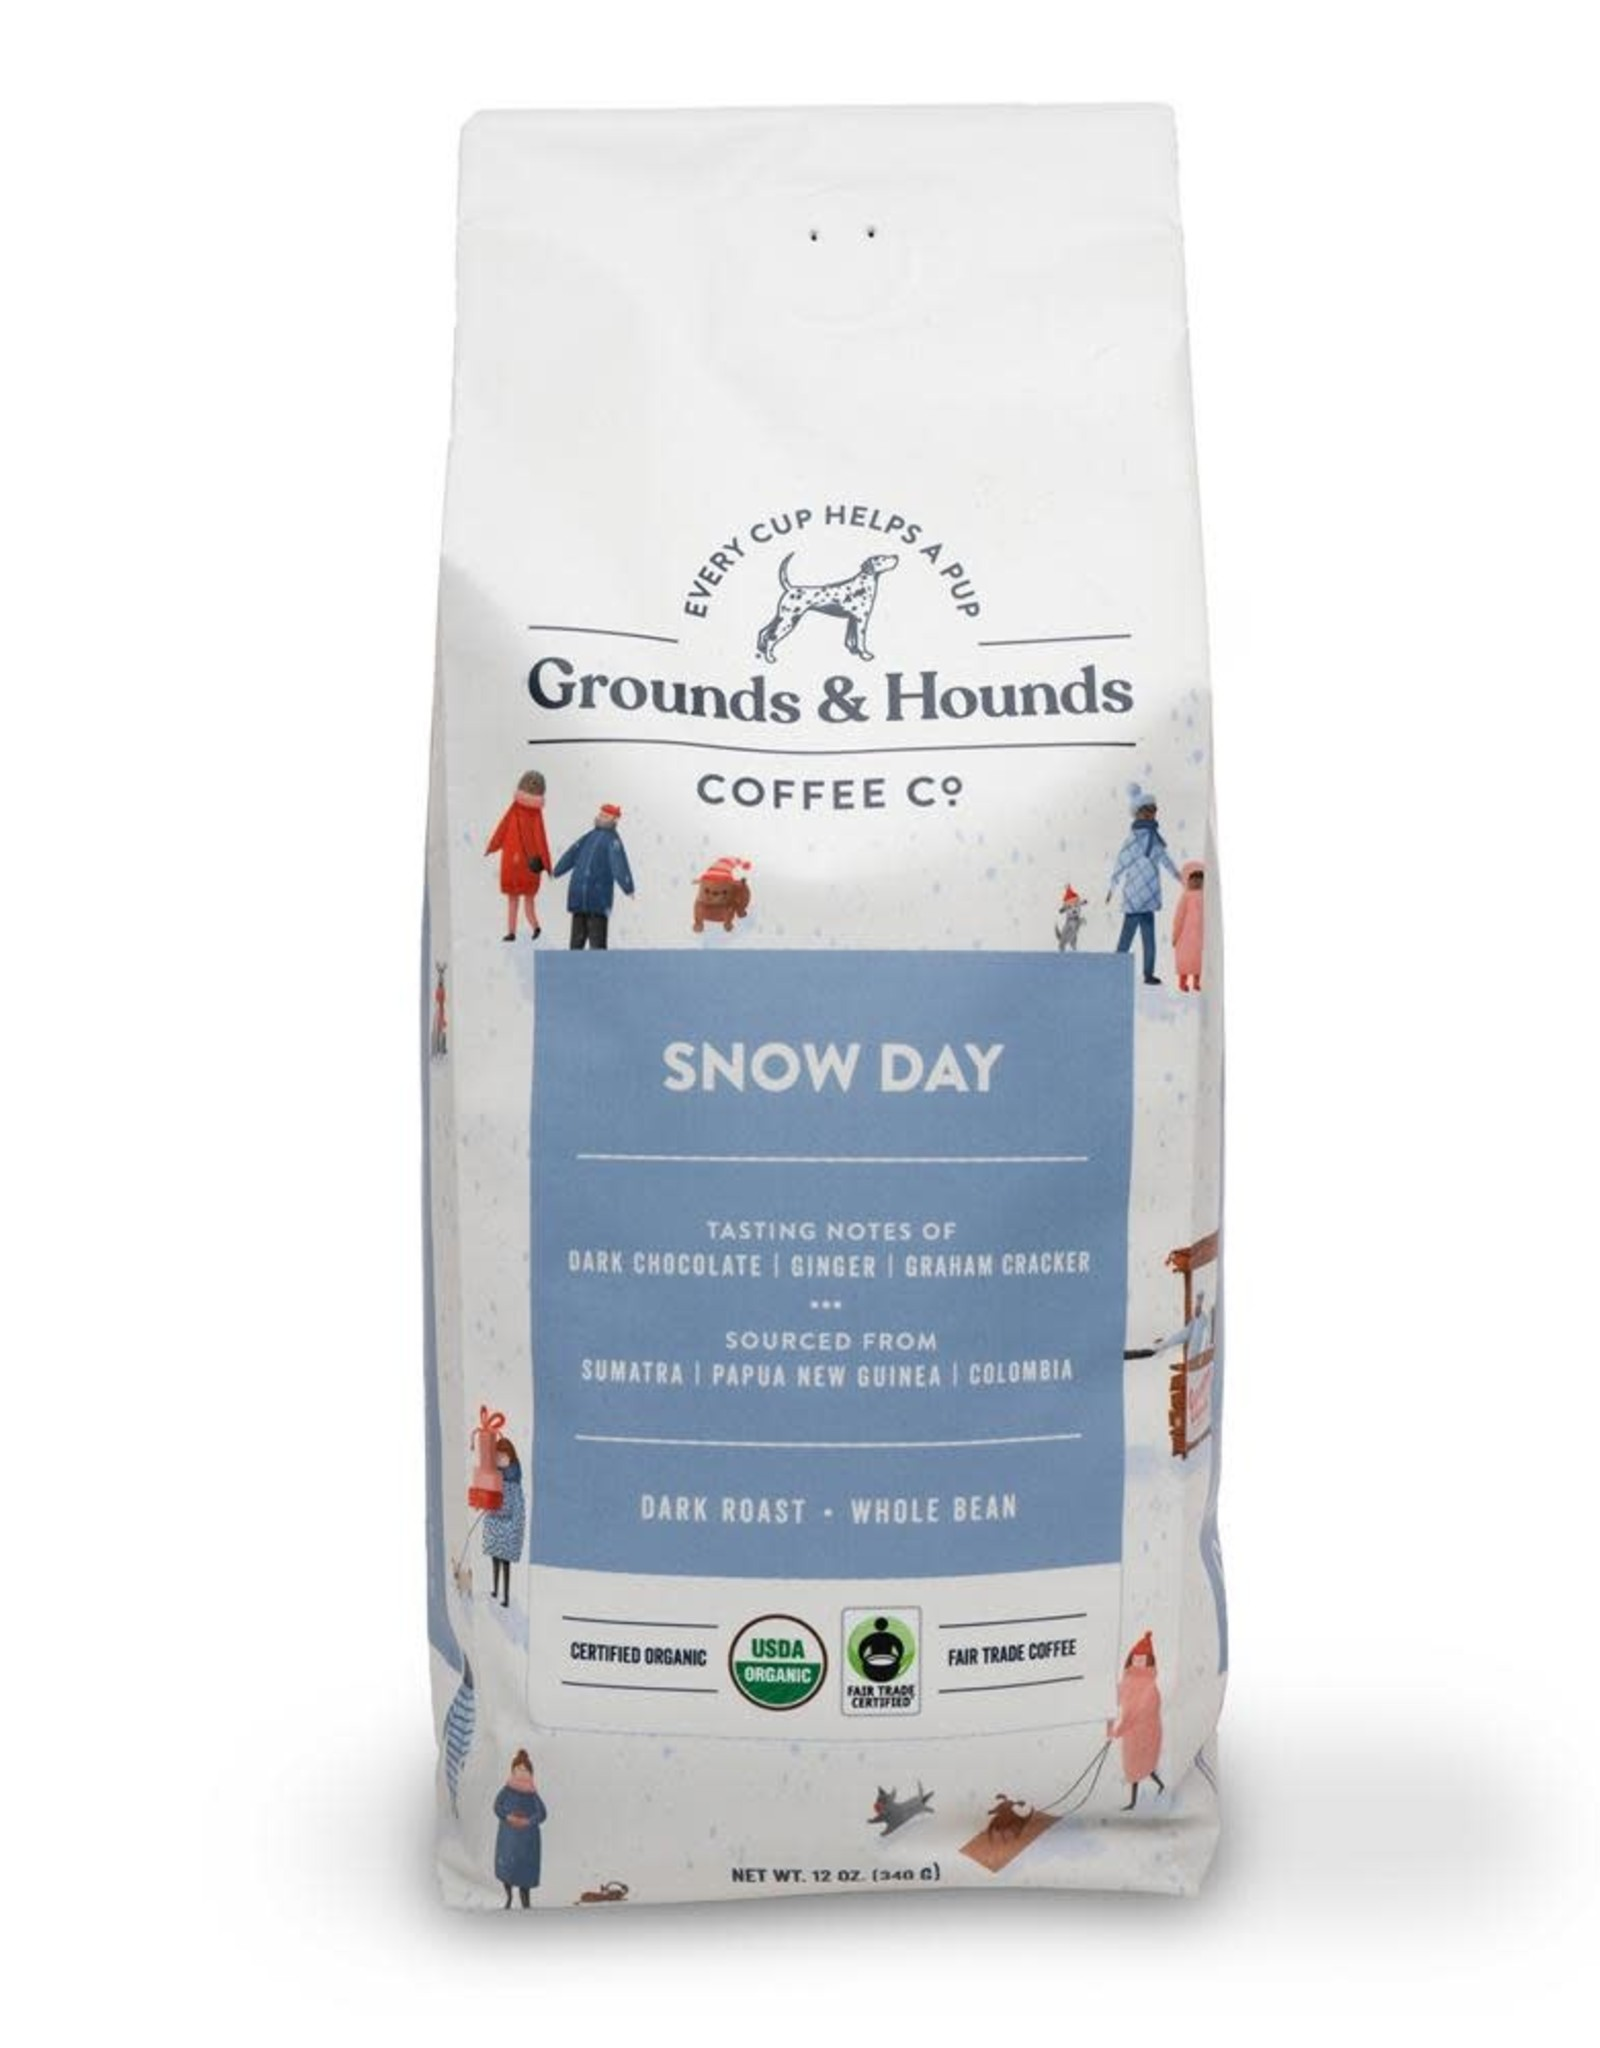 Grounds & Hounds Whole Bean Coffee Snow Day